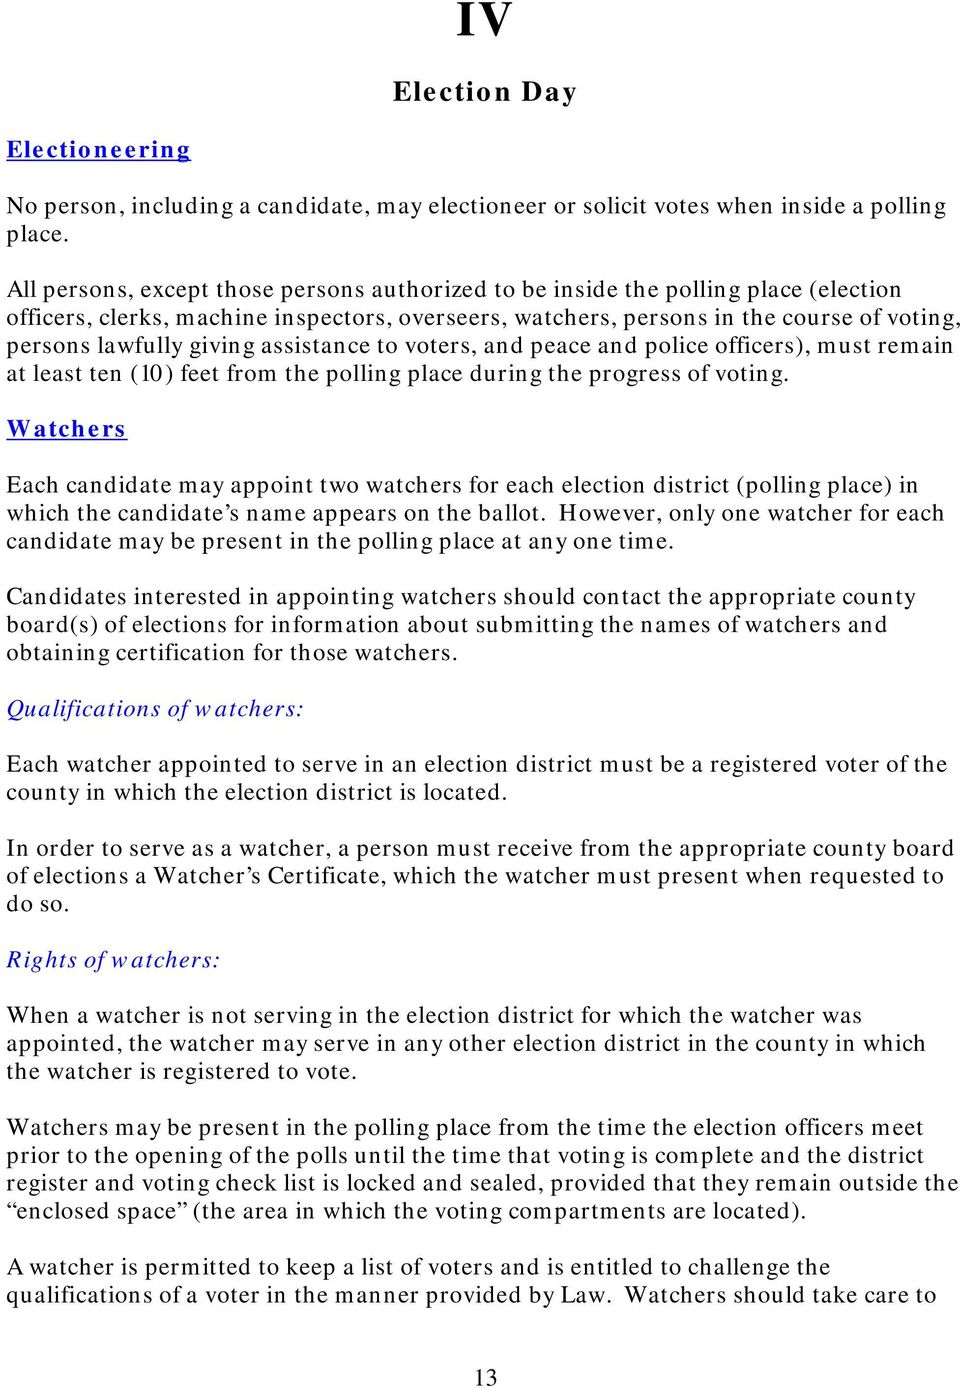 giving assistance to voters, and peace and police officers), must remain at least ten (10) feet from the polling place during the progress of voting.